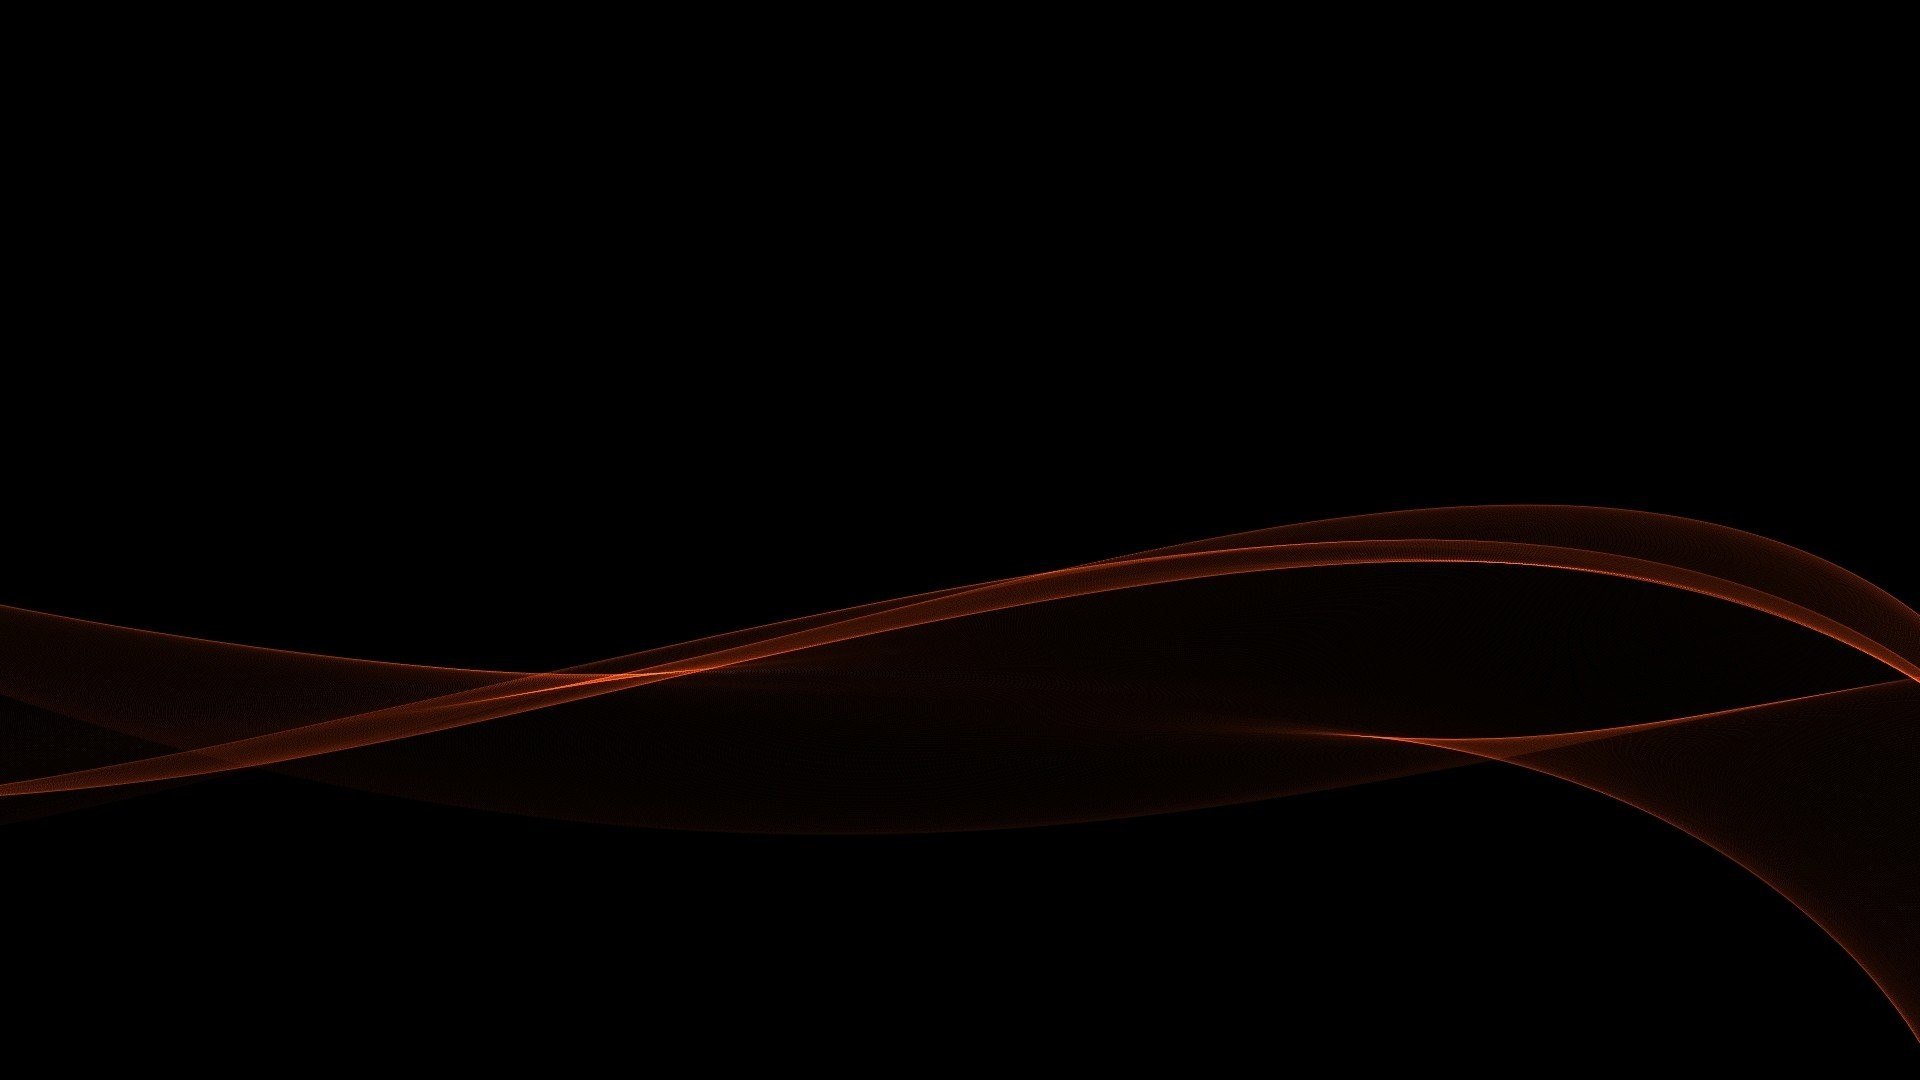 1920x1080 Black and Red Abstract Wallpaper Collection Amazing Wallpaperz Black And Red  Abstract Wallpapers Wallpapers)